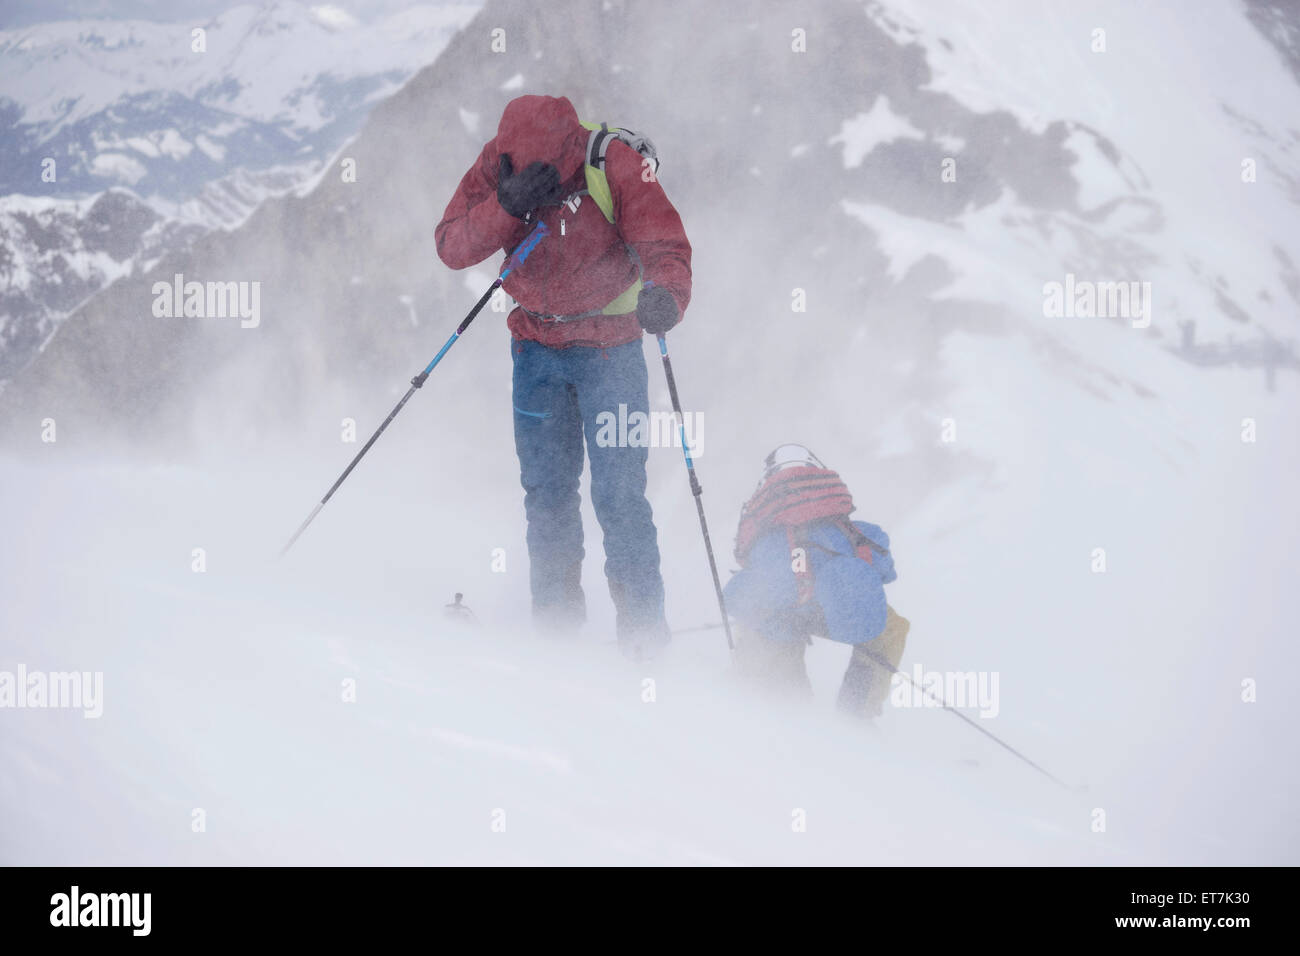 Ski mountaineers climbing on snowy mountain in snow storm, Zell Am See, Austria - Stock Image